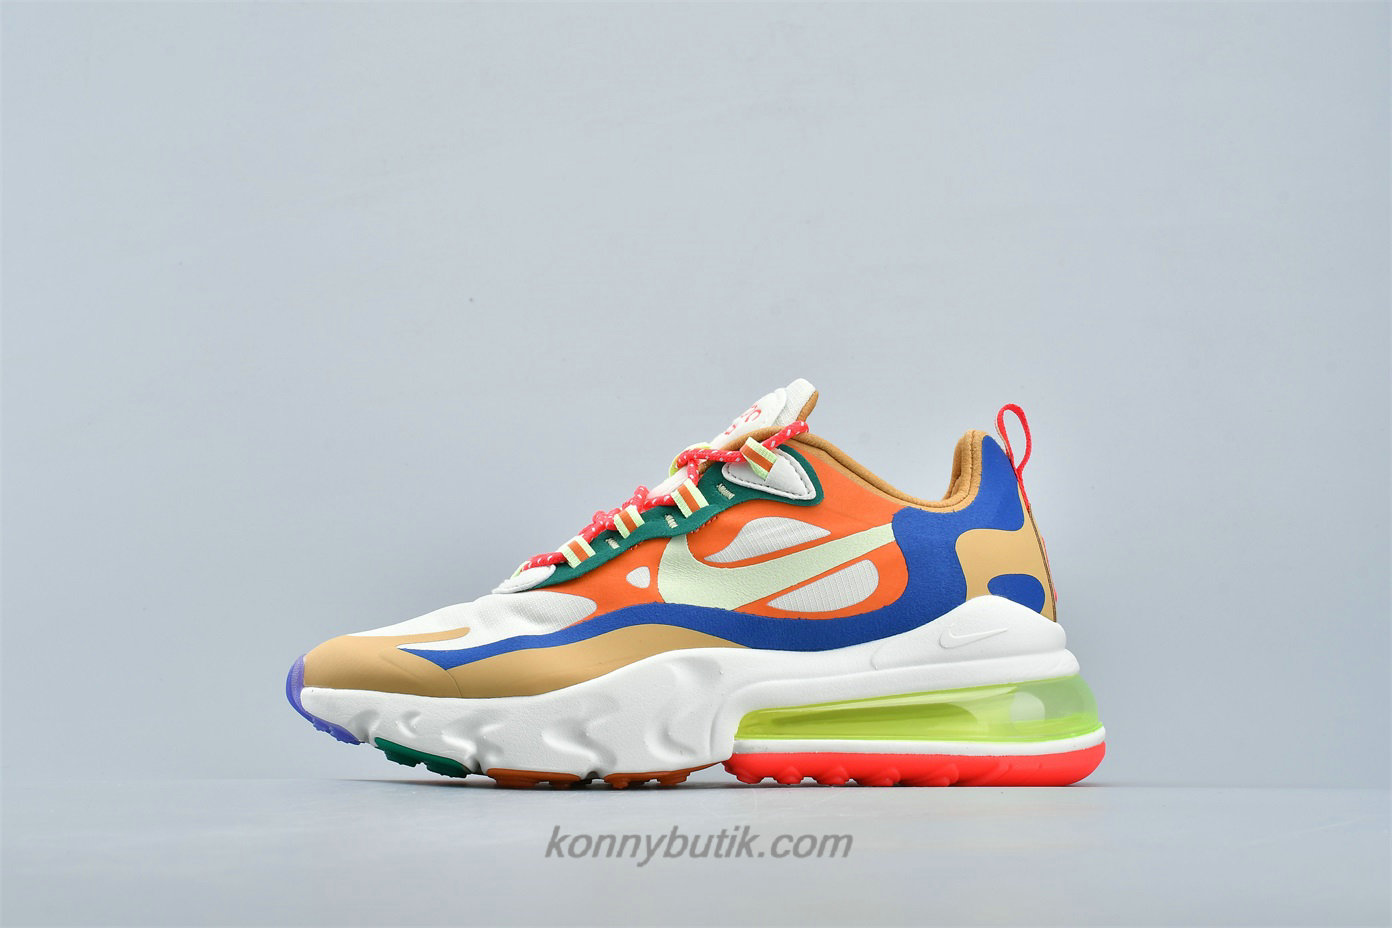 Nike Air Max 270 React Dame Sko Fløde / Khaki / Orange / Blå (CQ4805 071)